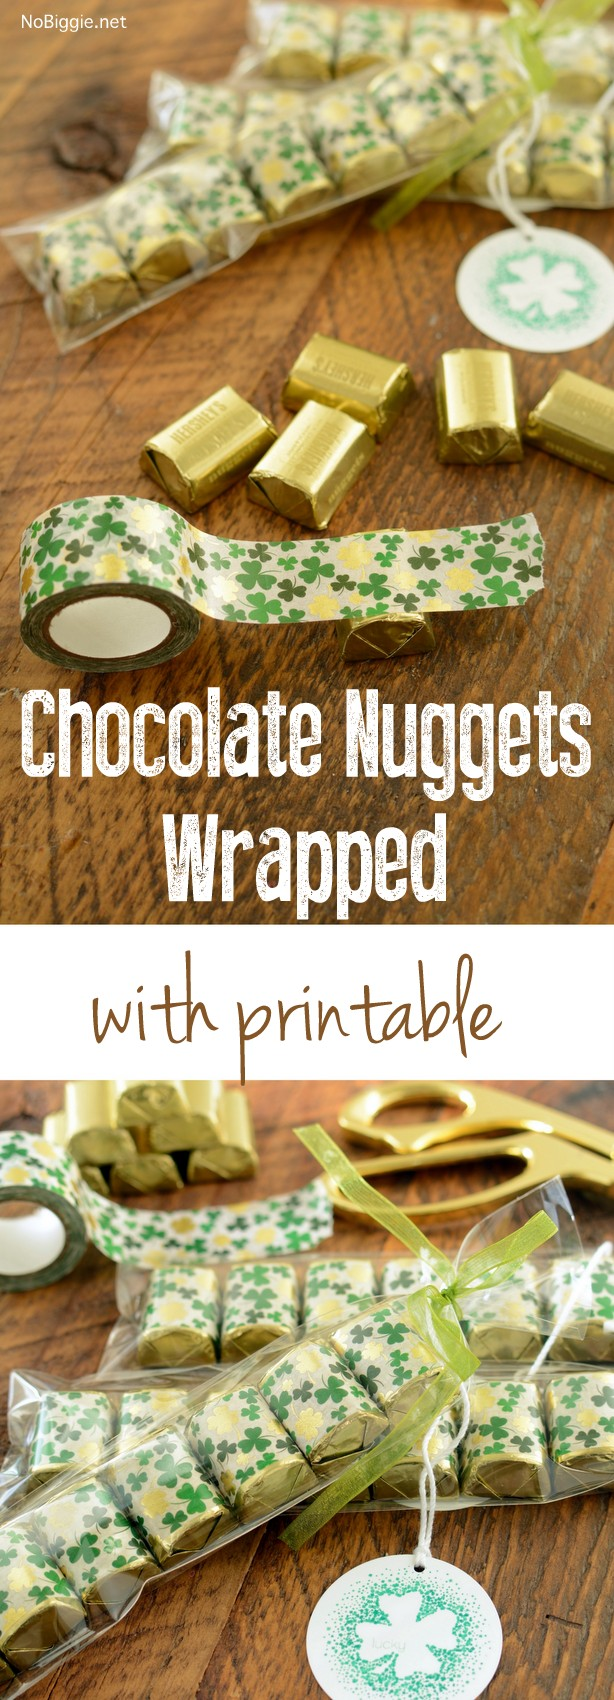 Chocolate Nuggets wrapped in washi tape with printable gift tag